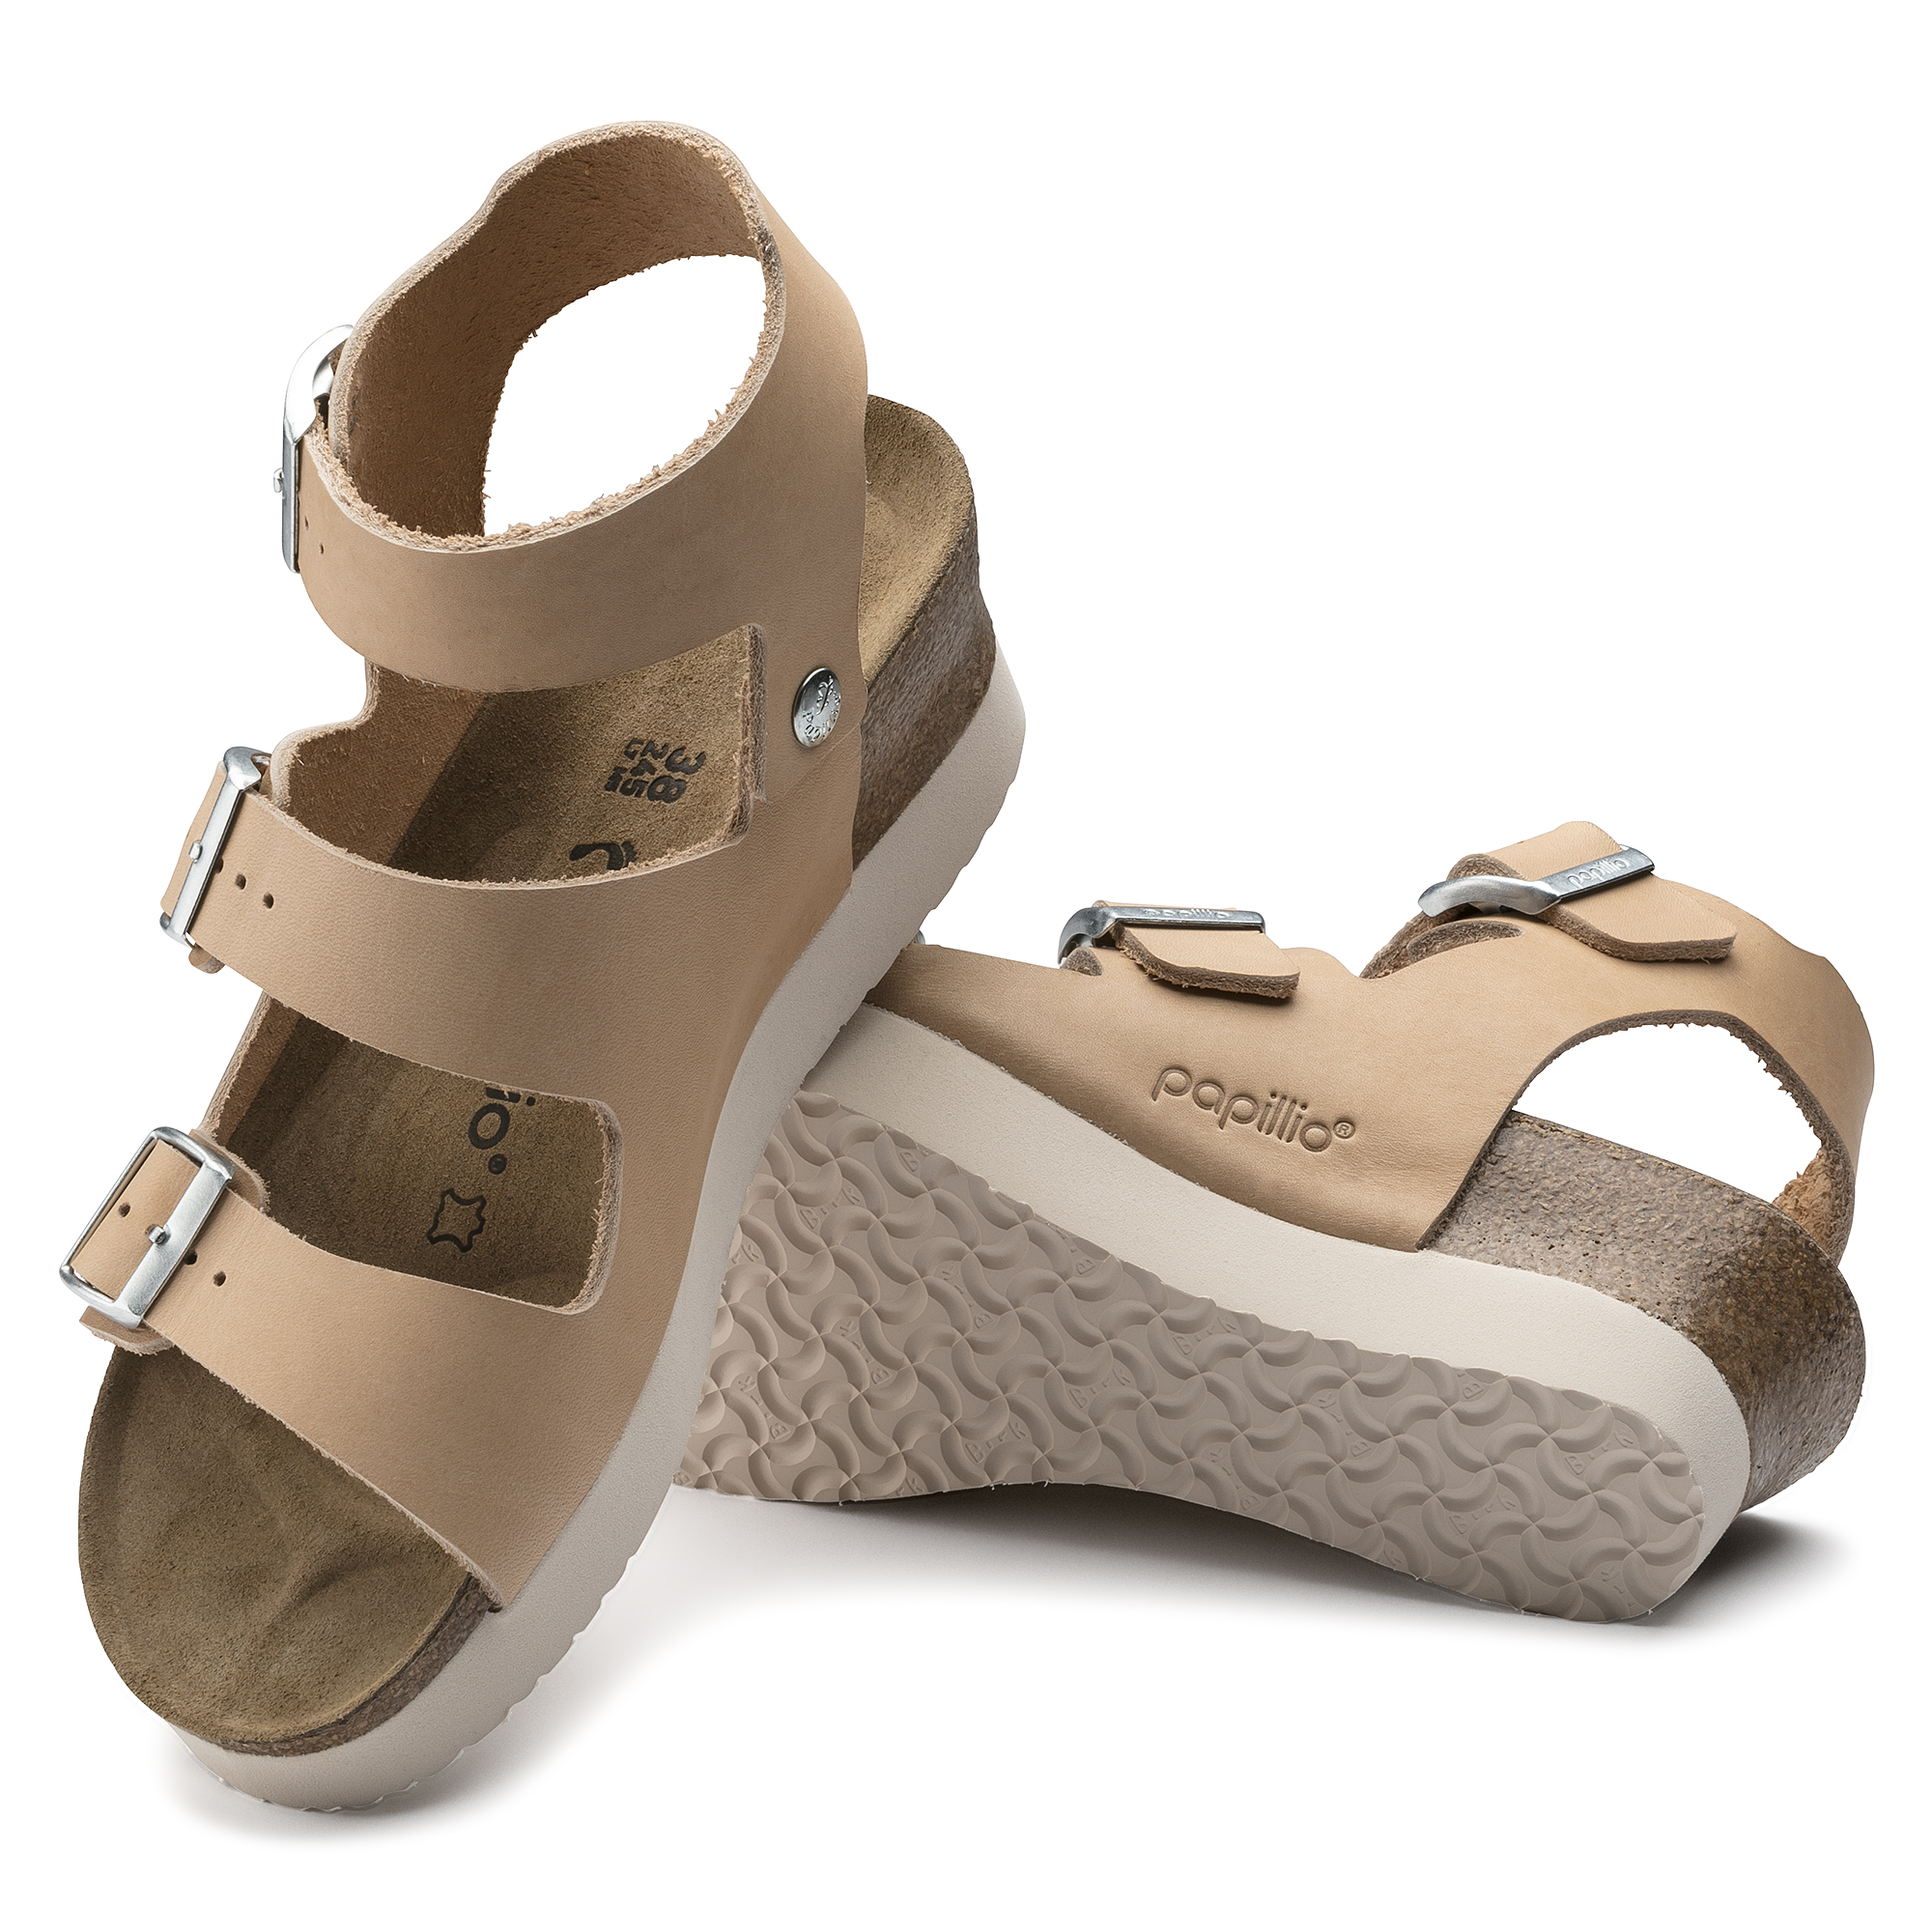 675b8c1ddd92 ... Linnea Natural Leather Nude ...